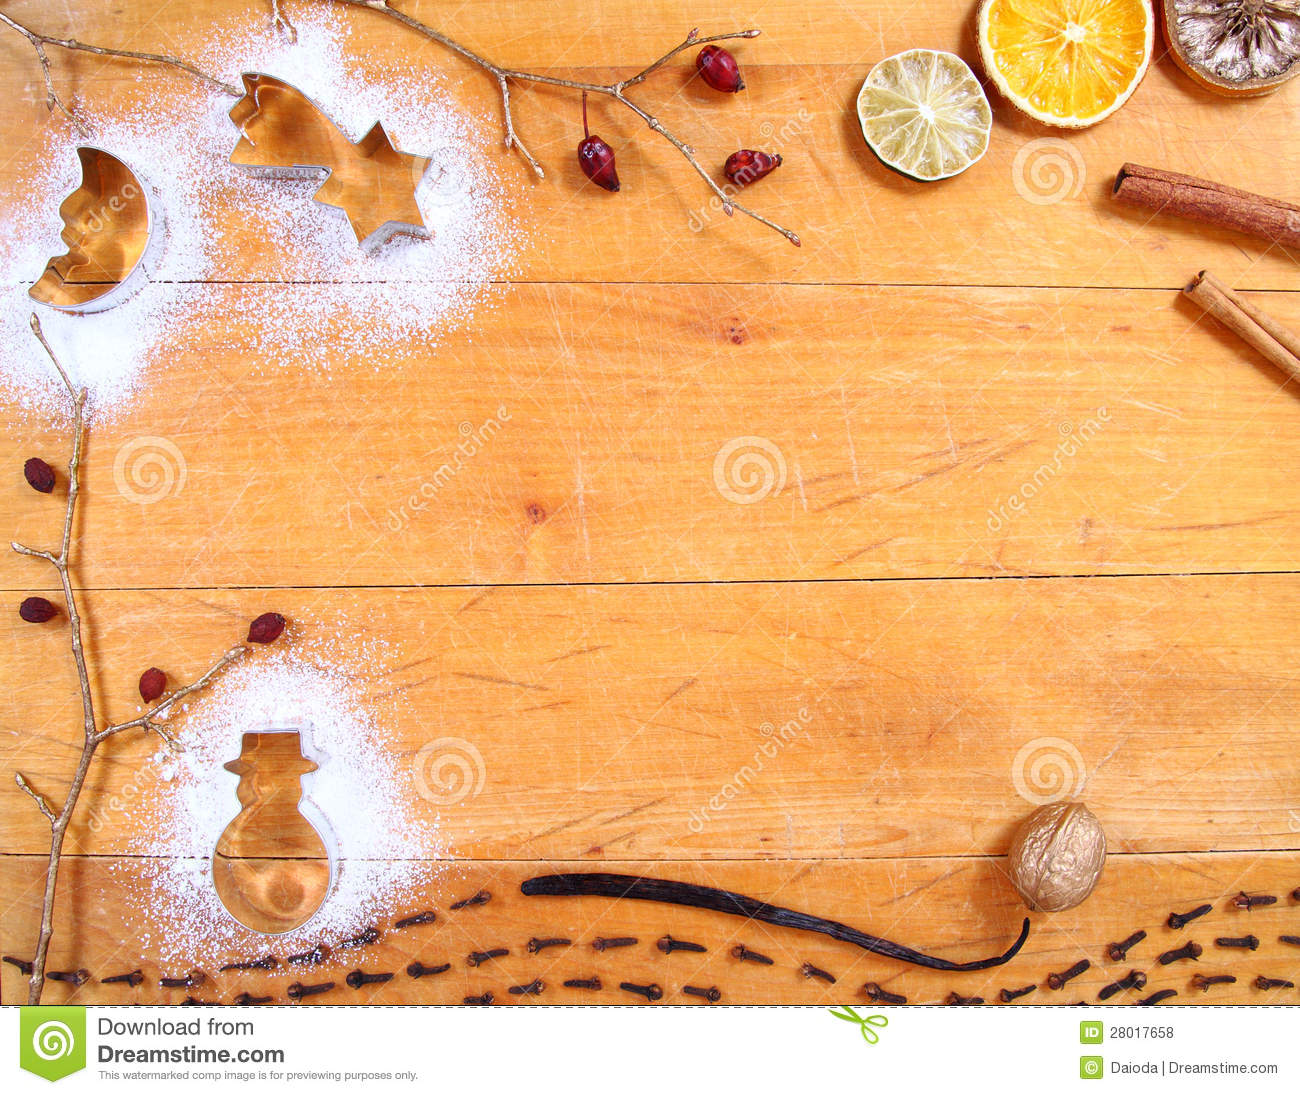 Cute Vintage Wallpaper Christmas Baking Background Frame Stock Photo Image